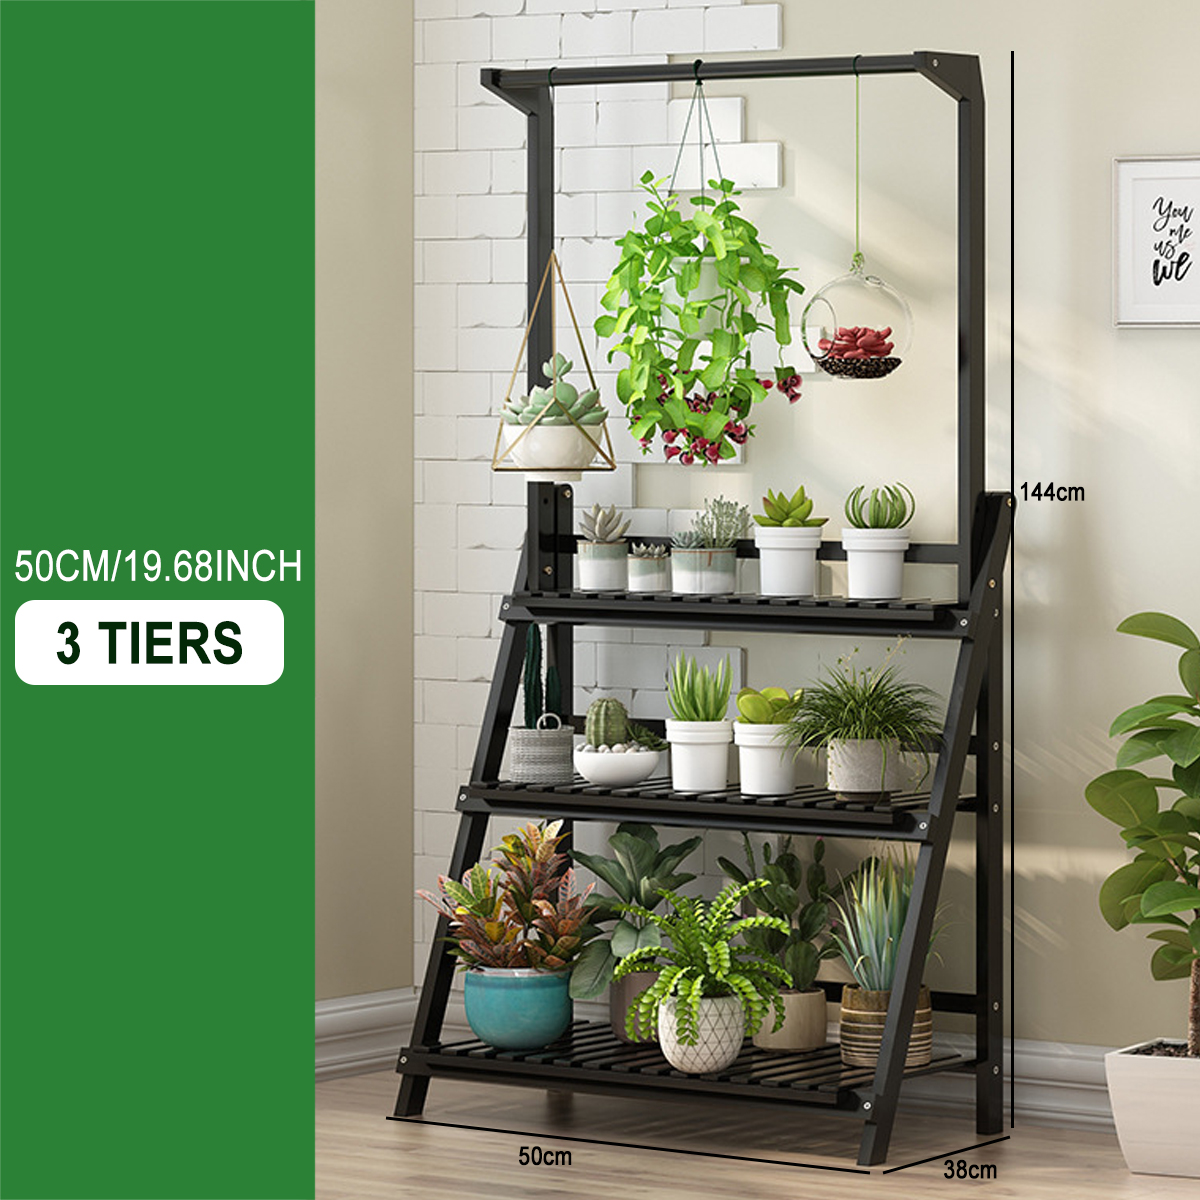 3 Tier Wooden Folding Ladder Book Plant Stand with Hanging Bar Indoor Outdoor